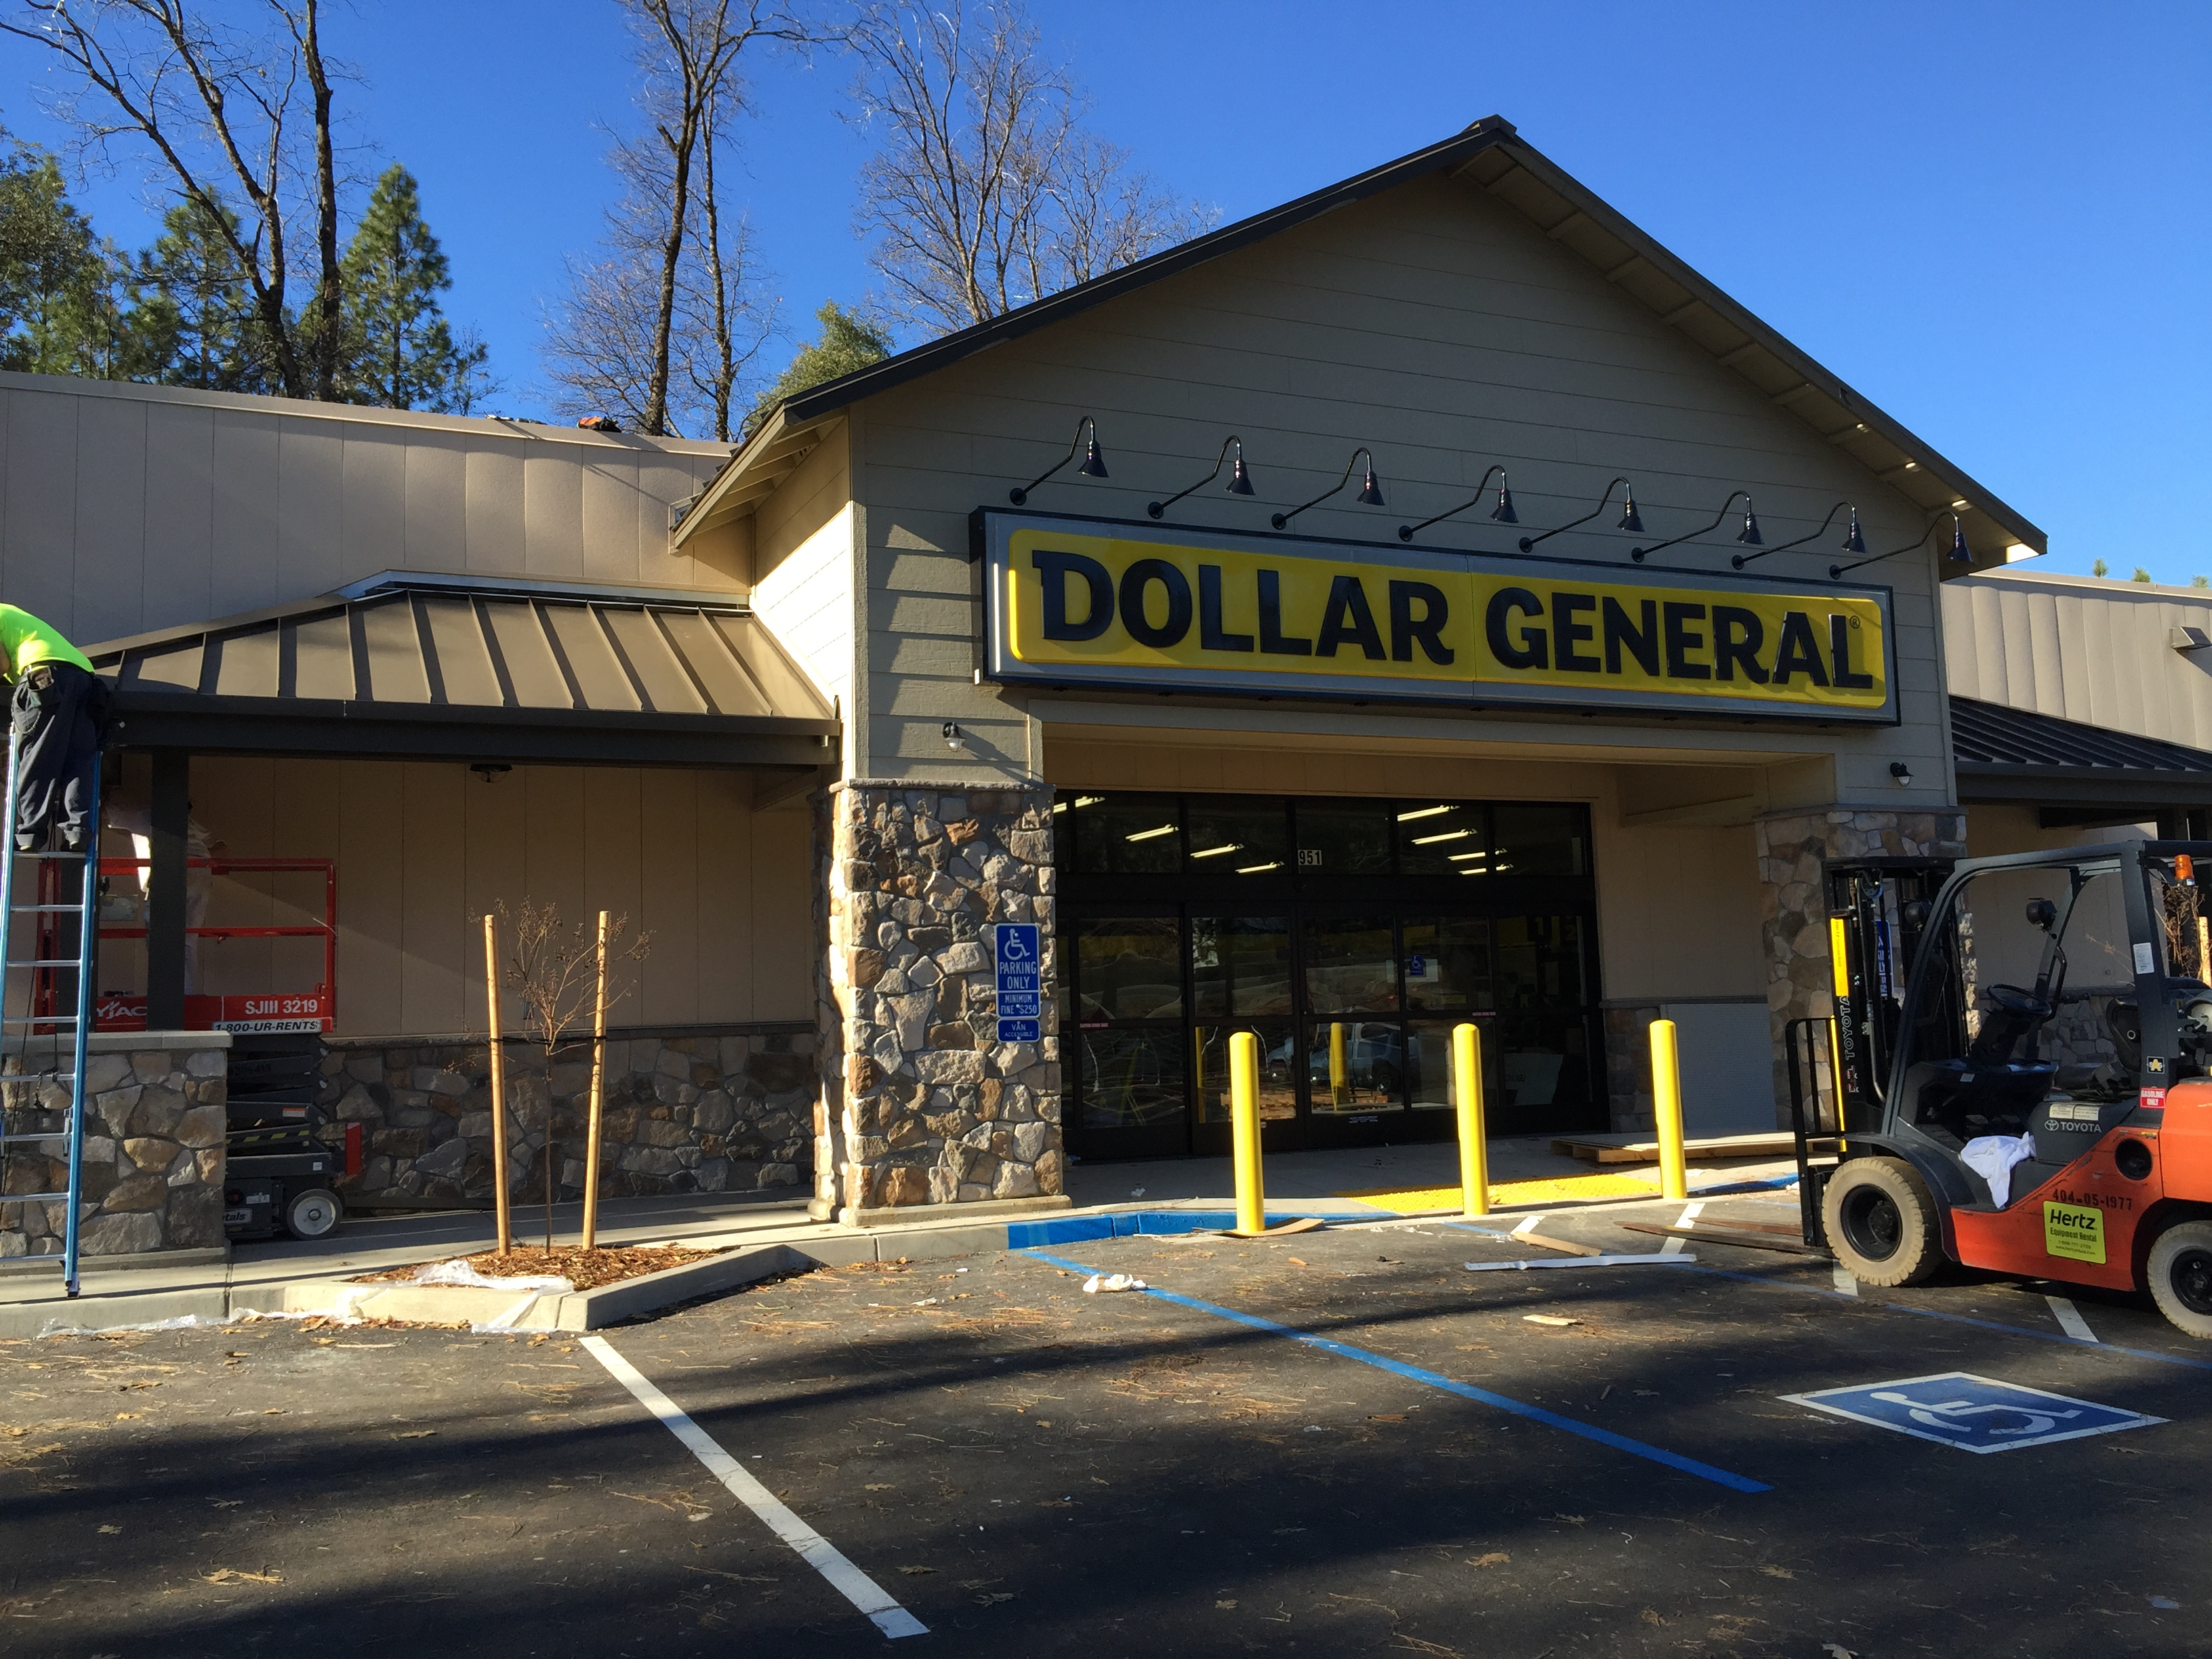 Dollar General - Colfax - M.A. Smith Painting